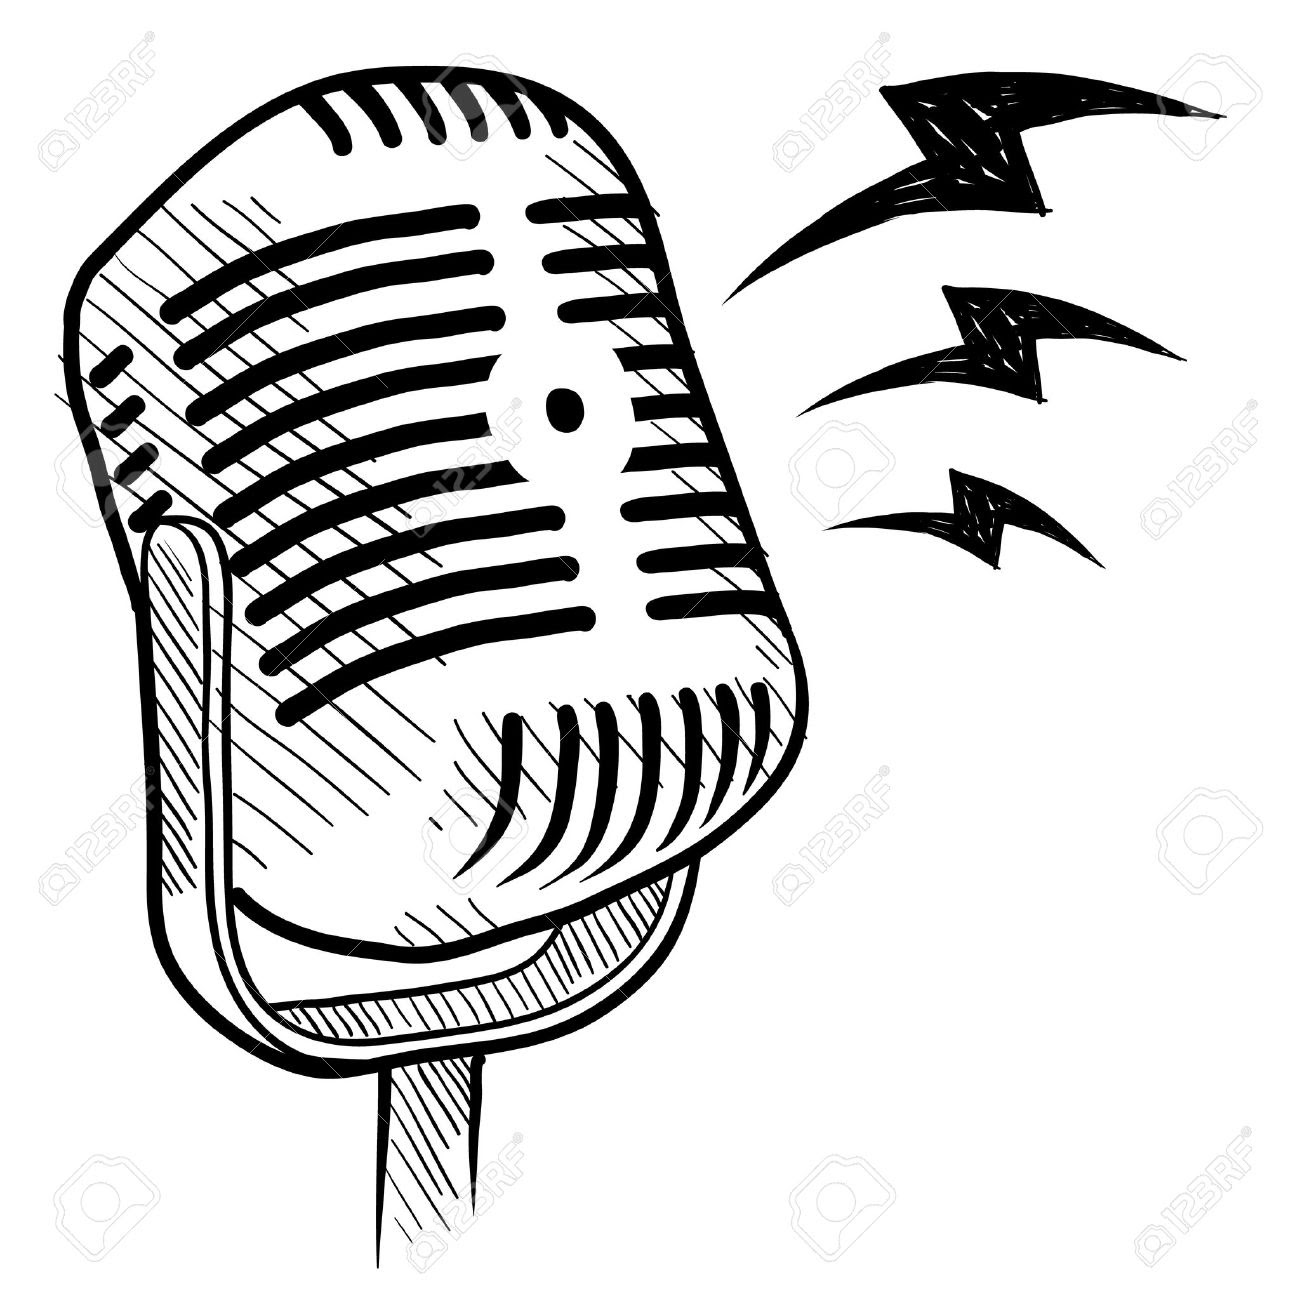 Microphone With Music Notes Clipart Free Download Best Microphone